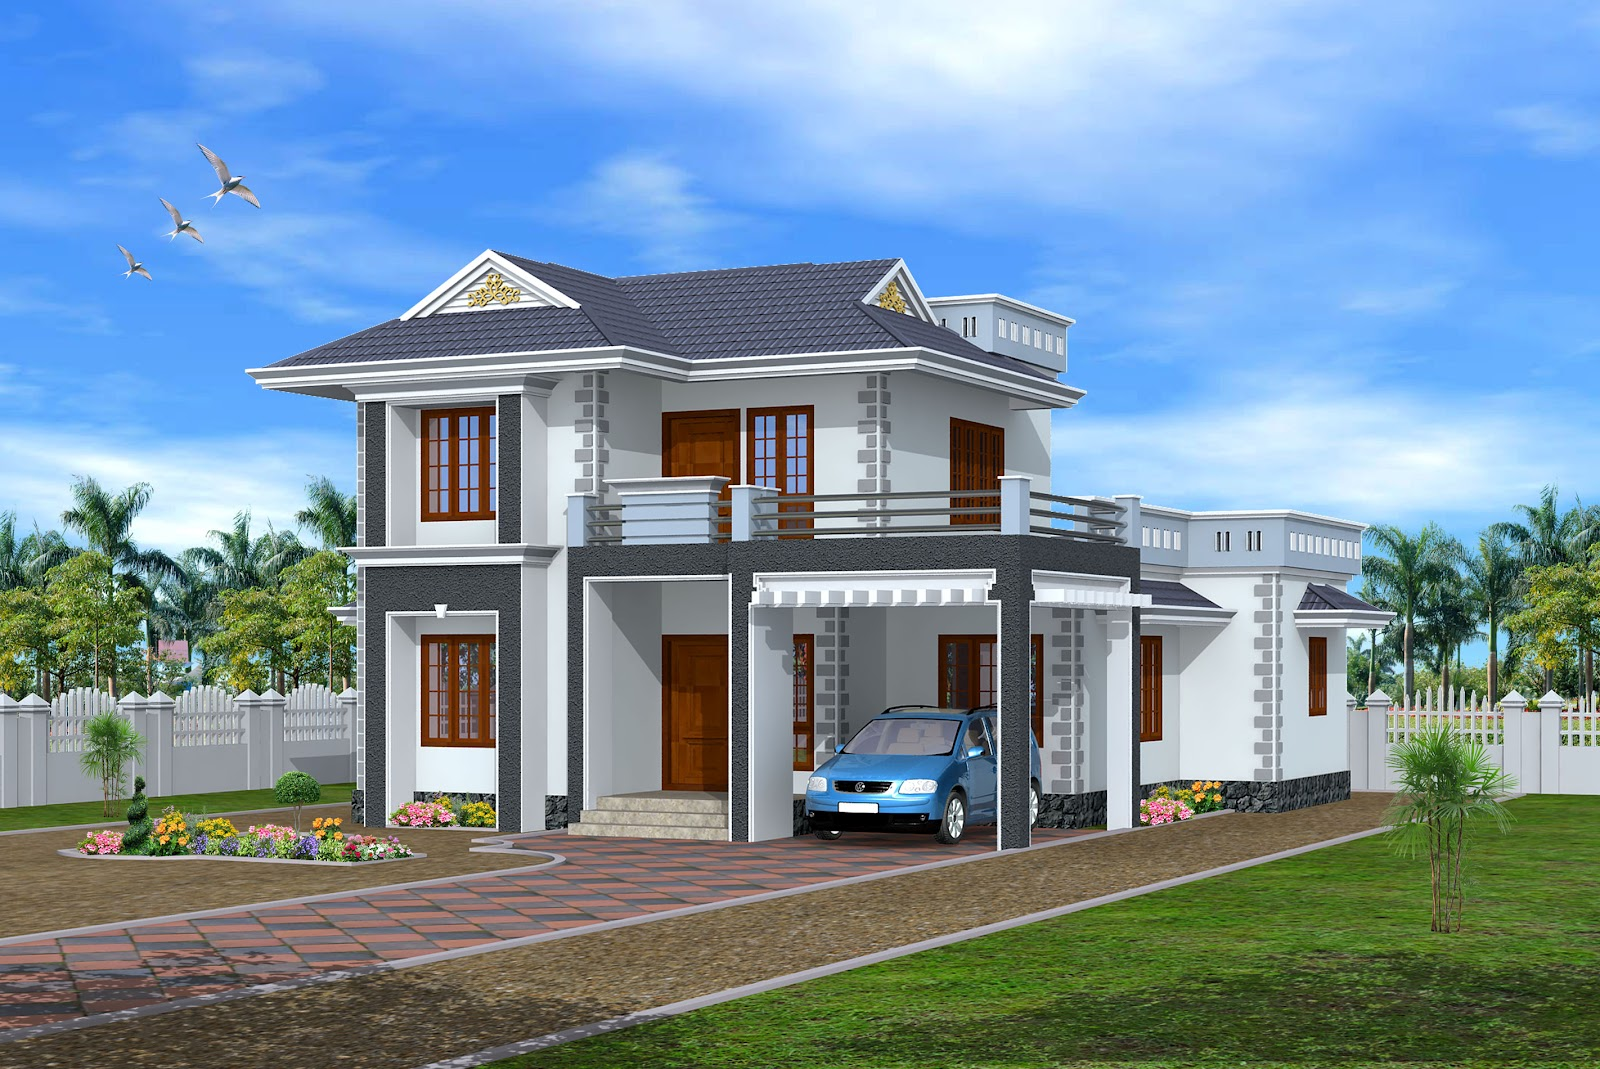 New home designs latest modern homes exterior designs views for Small building design ideas